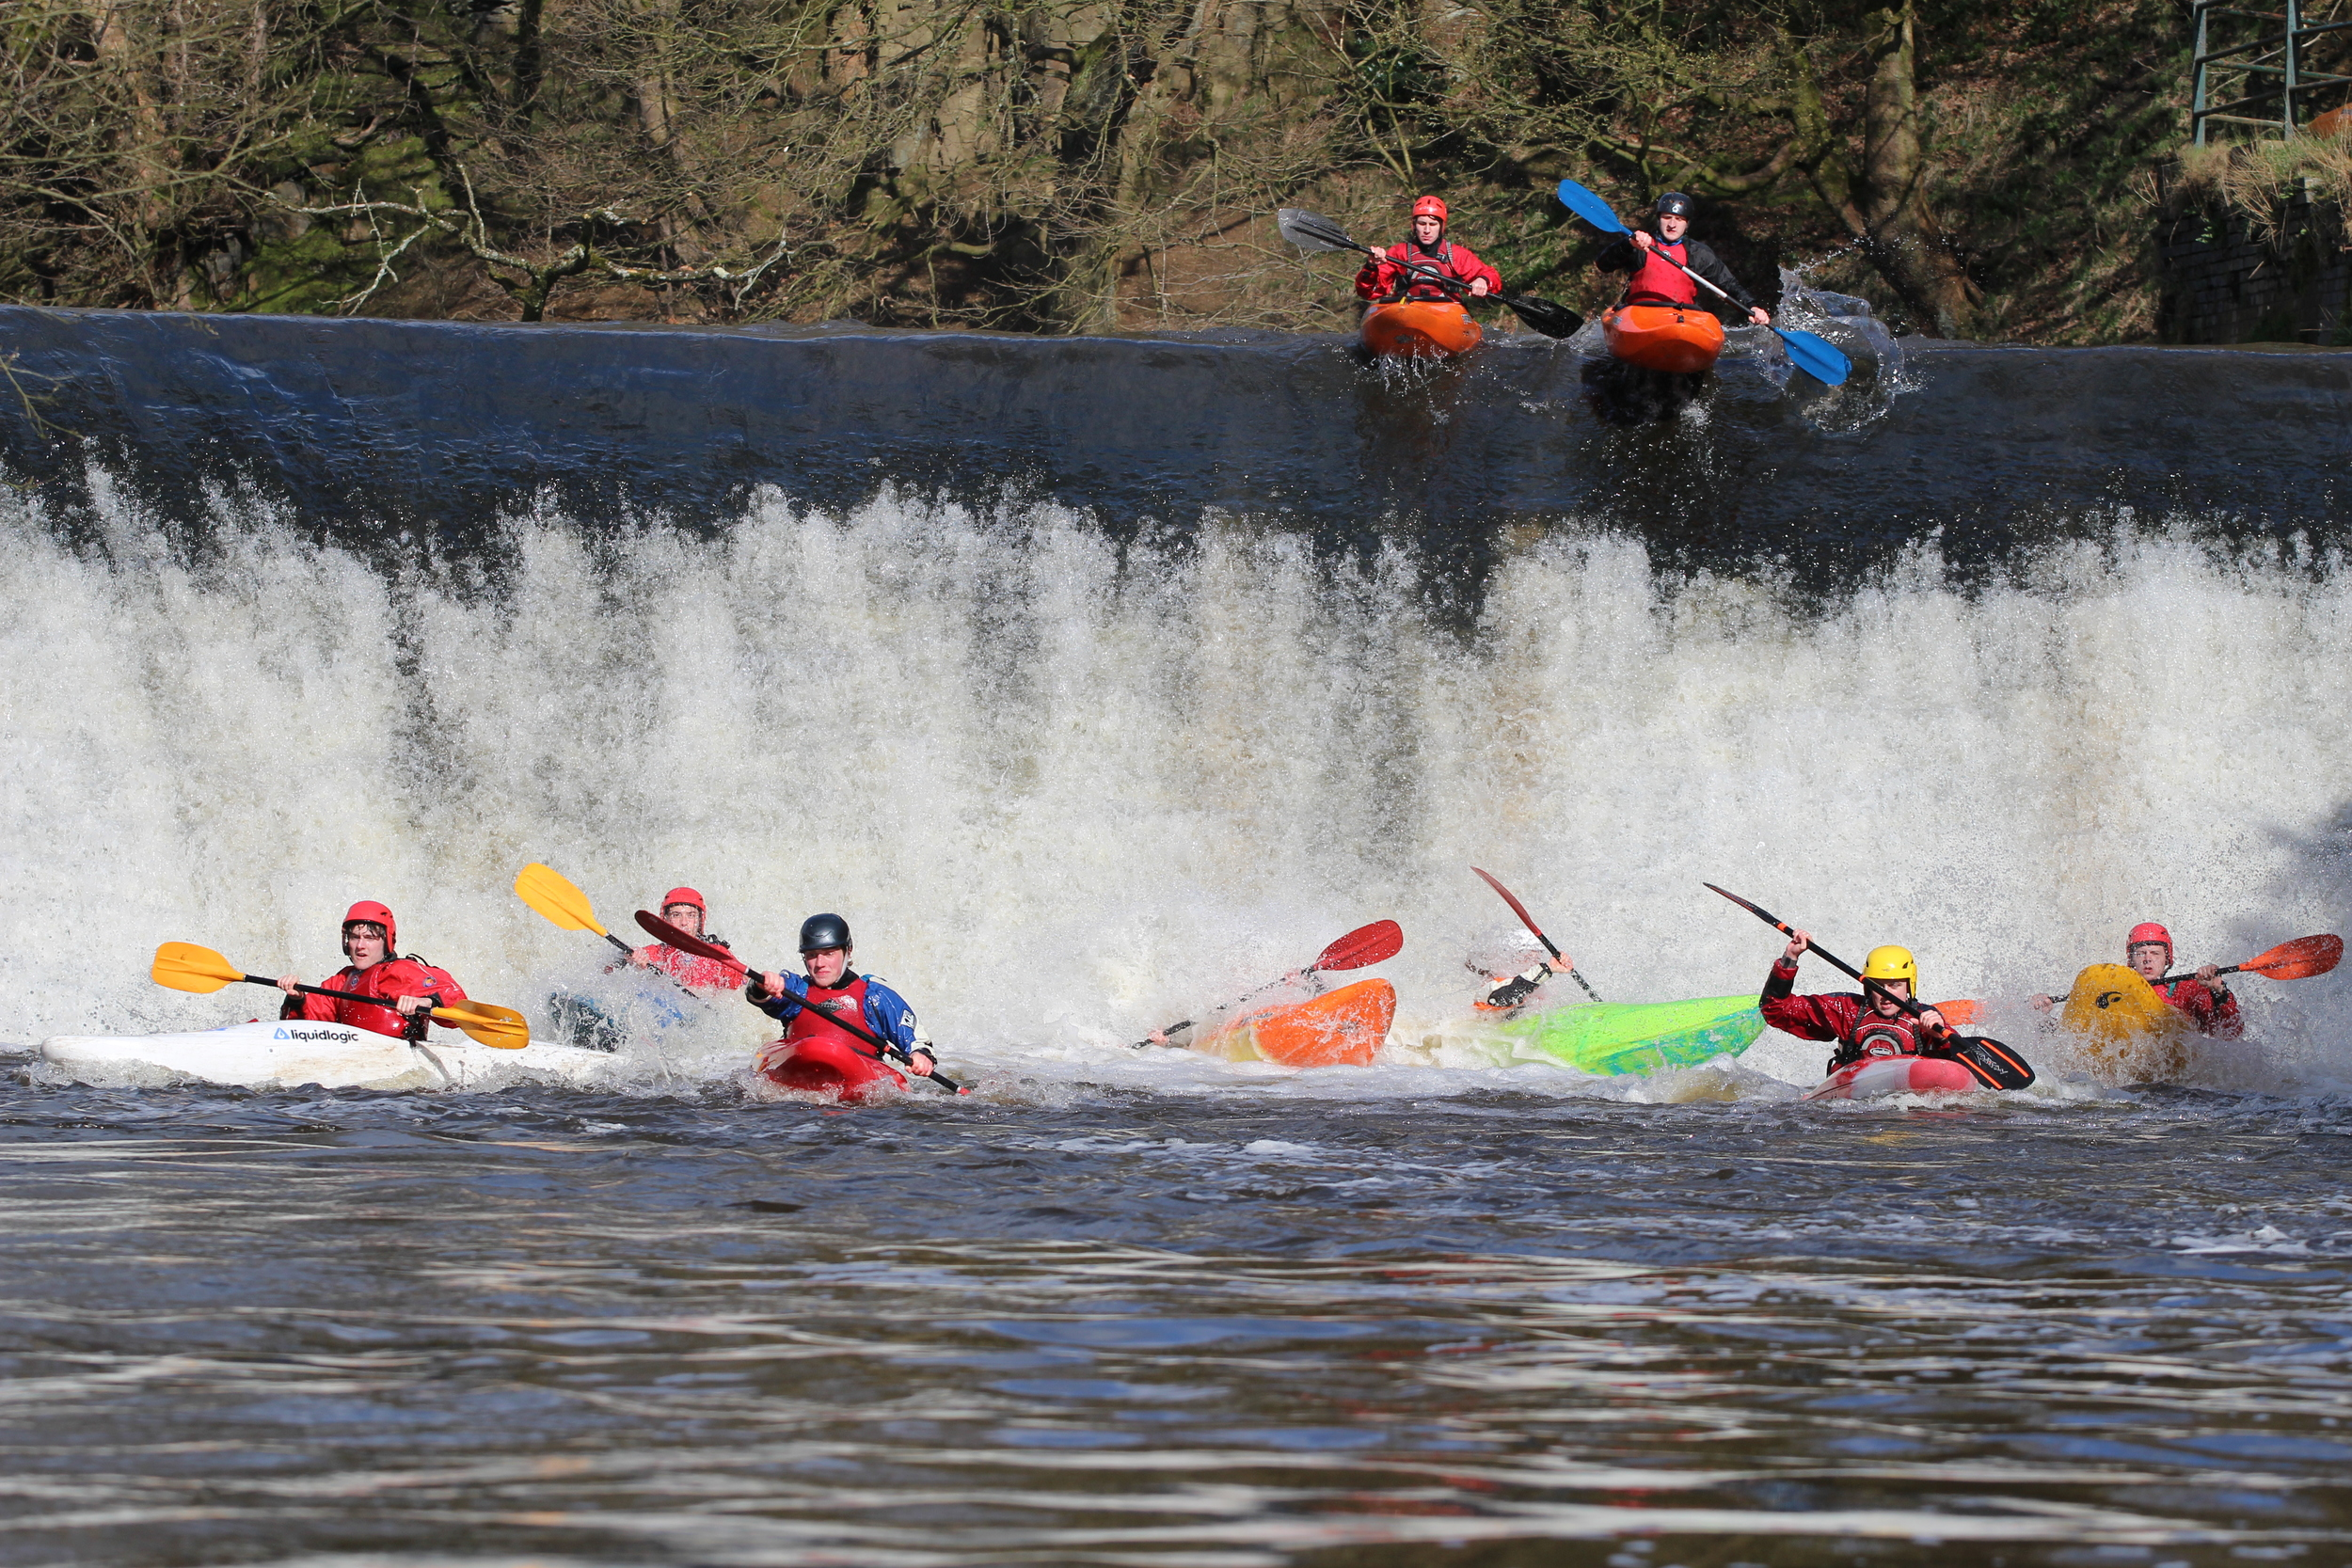 Down come the paddlers in the Fresher Boater cross